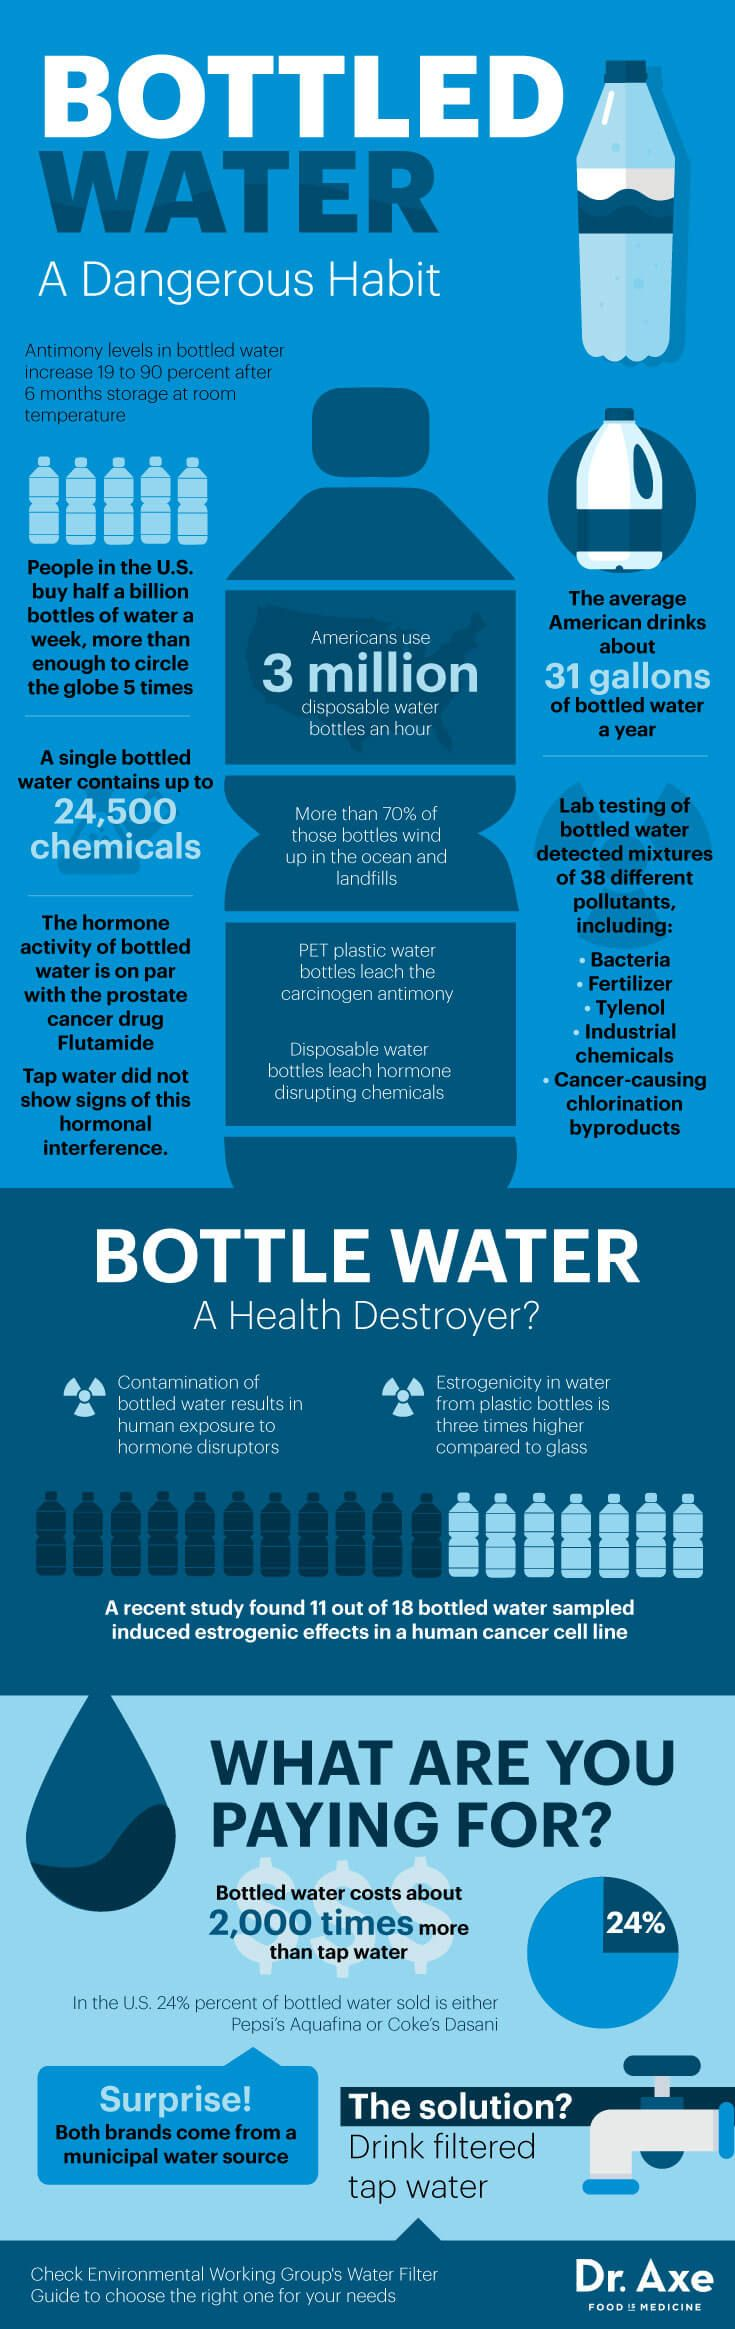 Bottled water risks - Dr. Axe http://www.draxe.com #health #holistic #natural